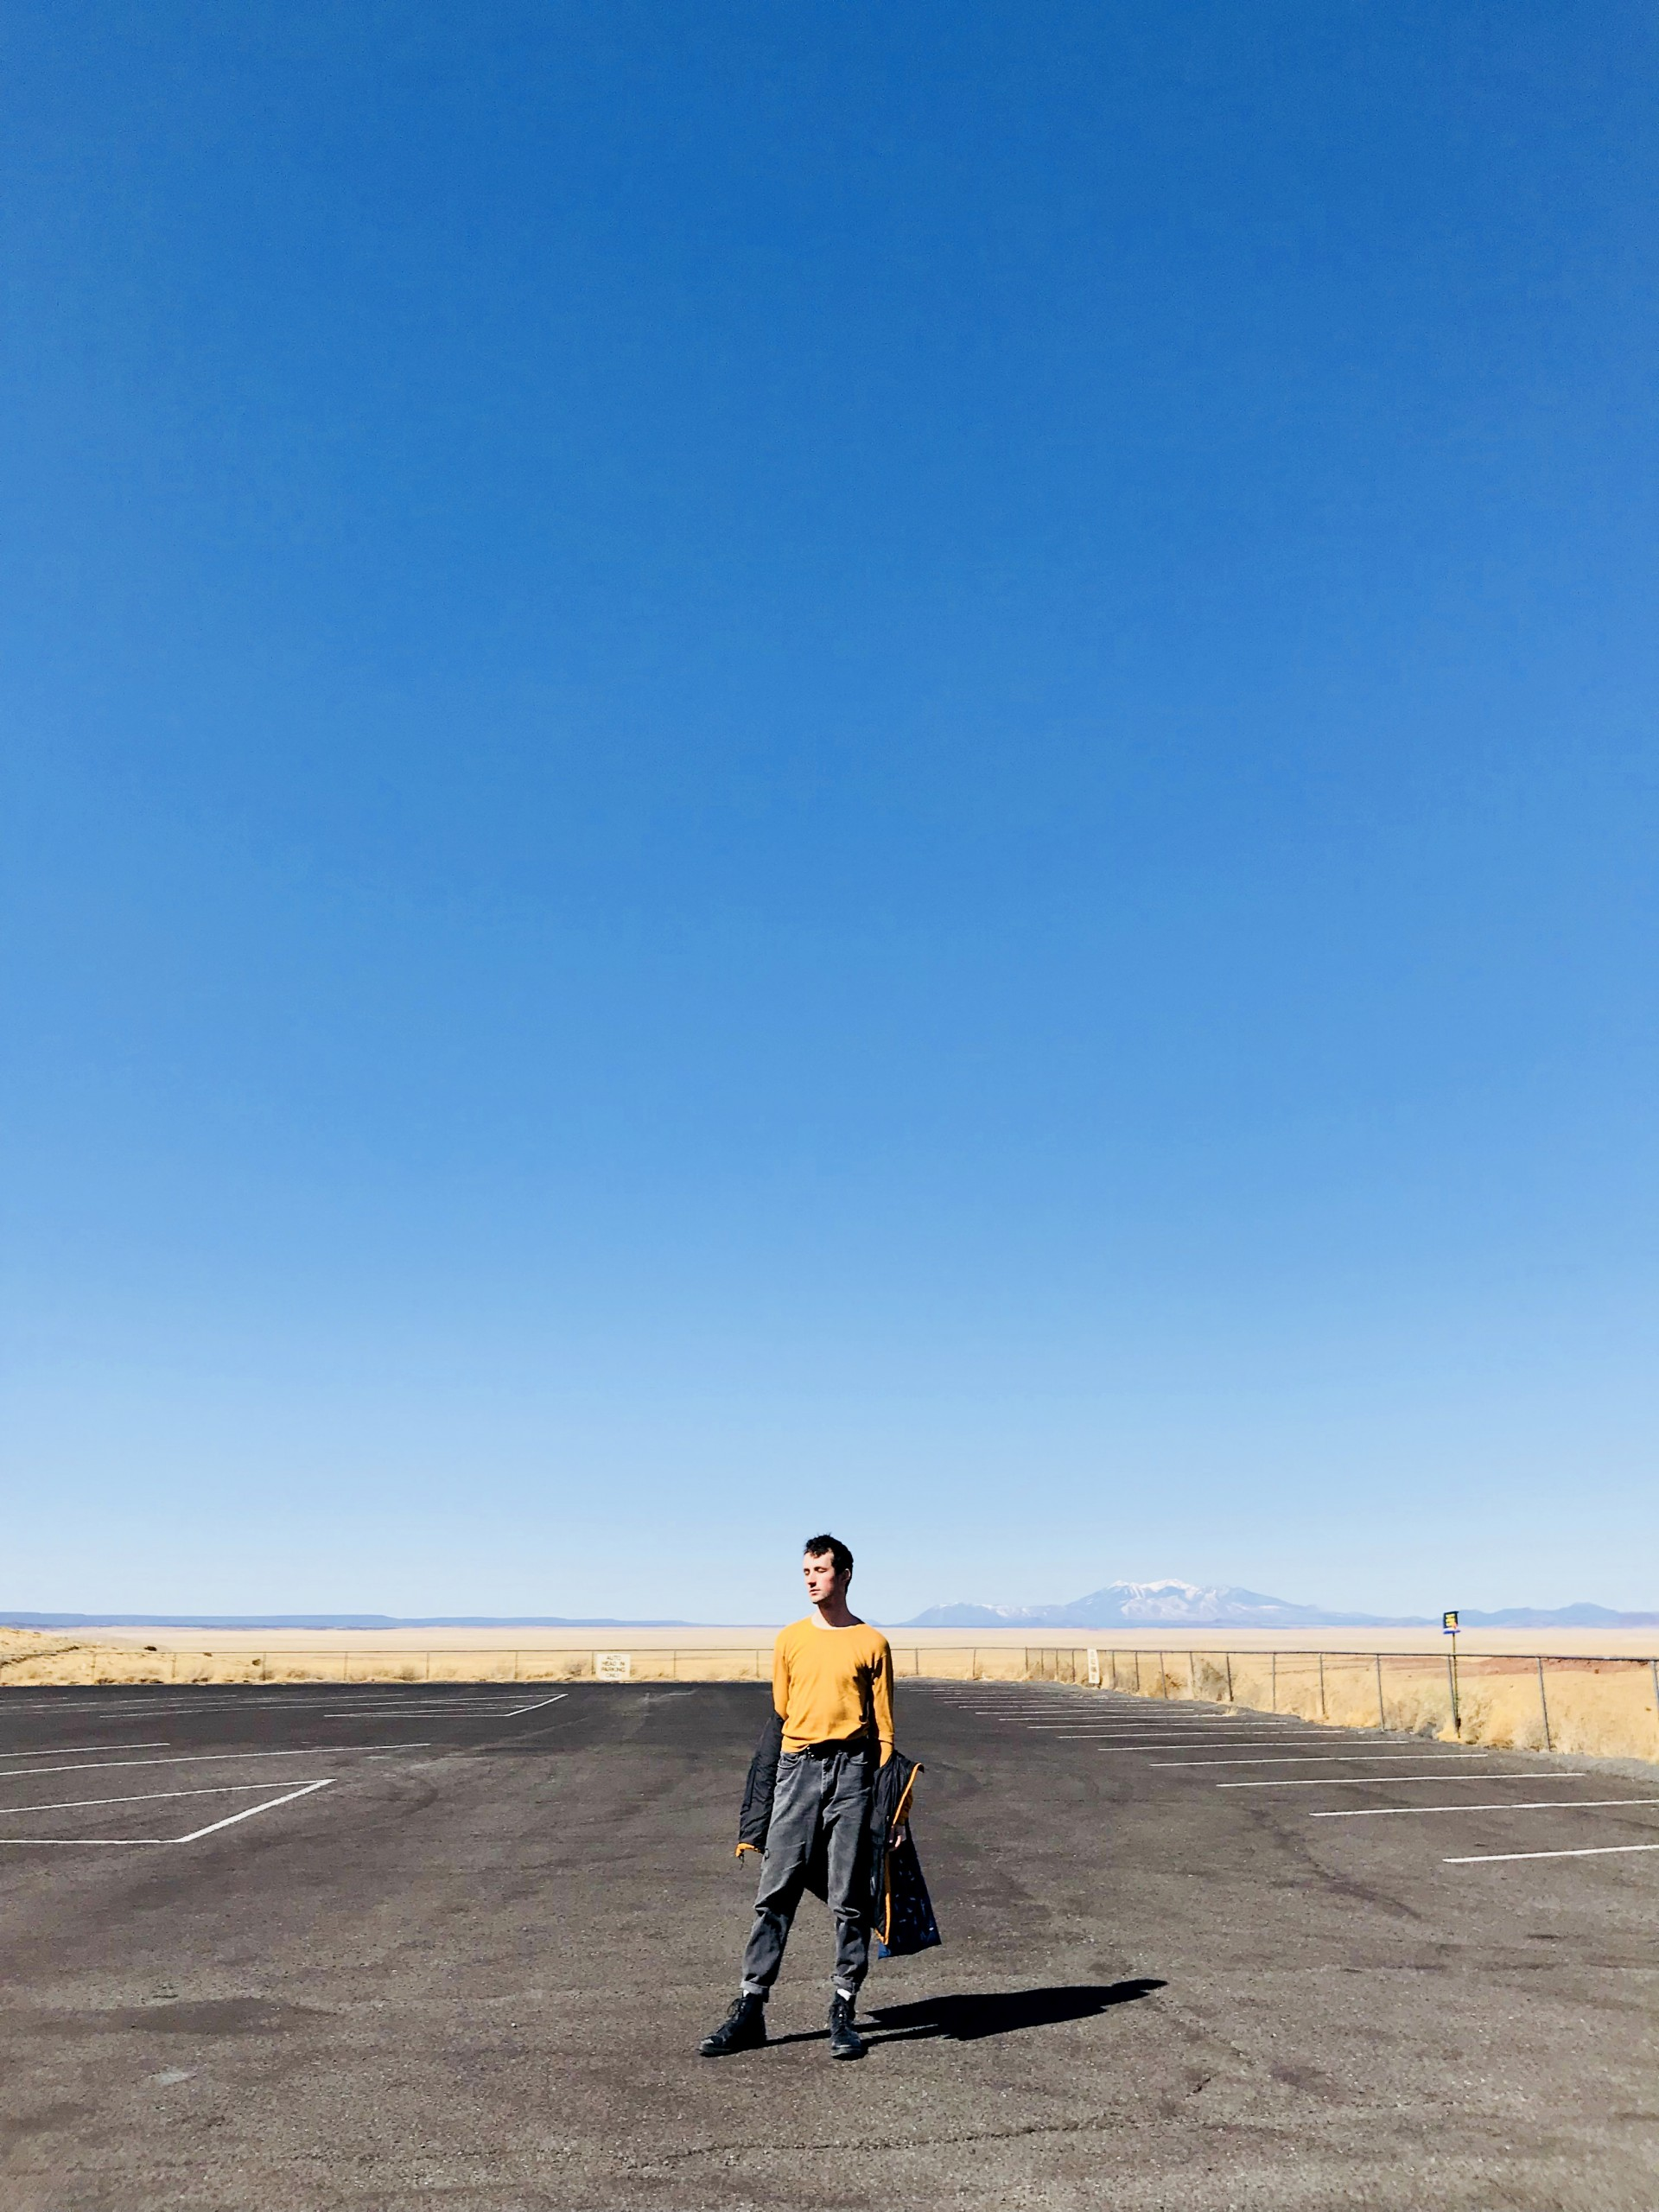 Male model standing in empty parking lot. 3/4 photograph is blue sky. Model has jacket half hanging off arms.